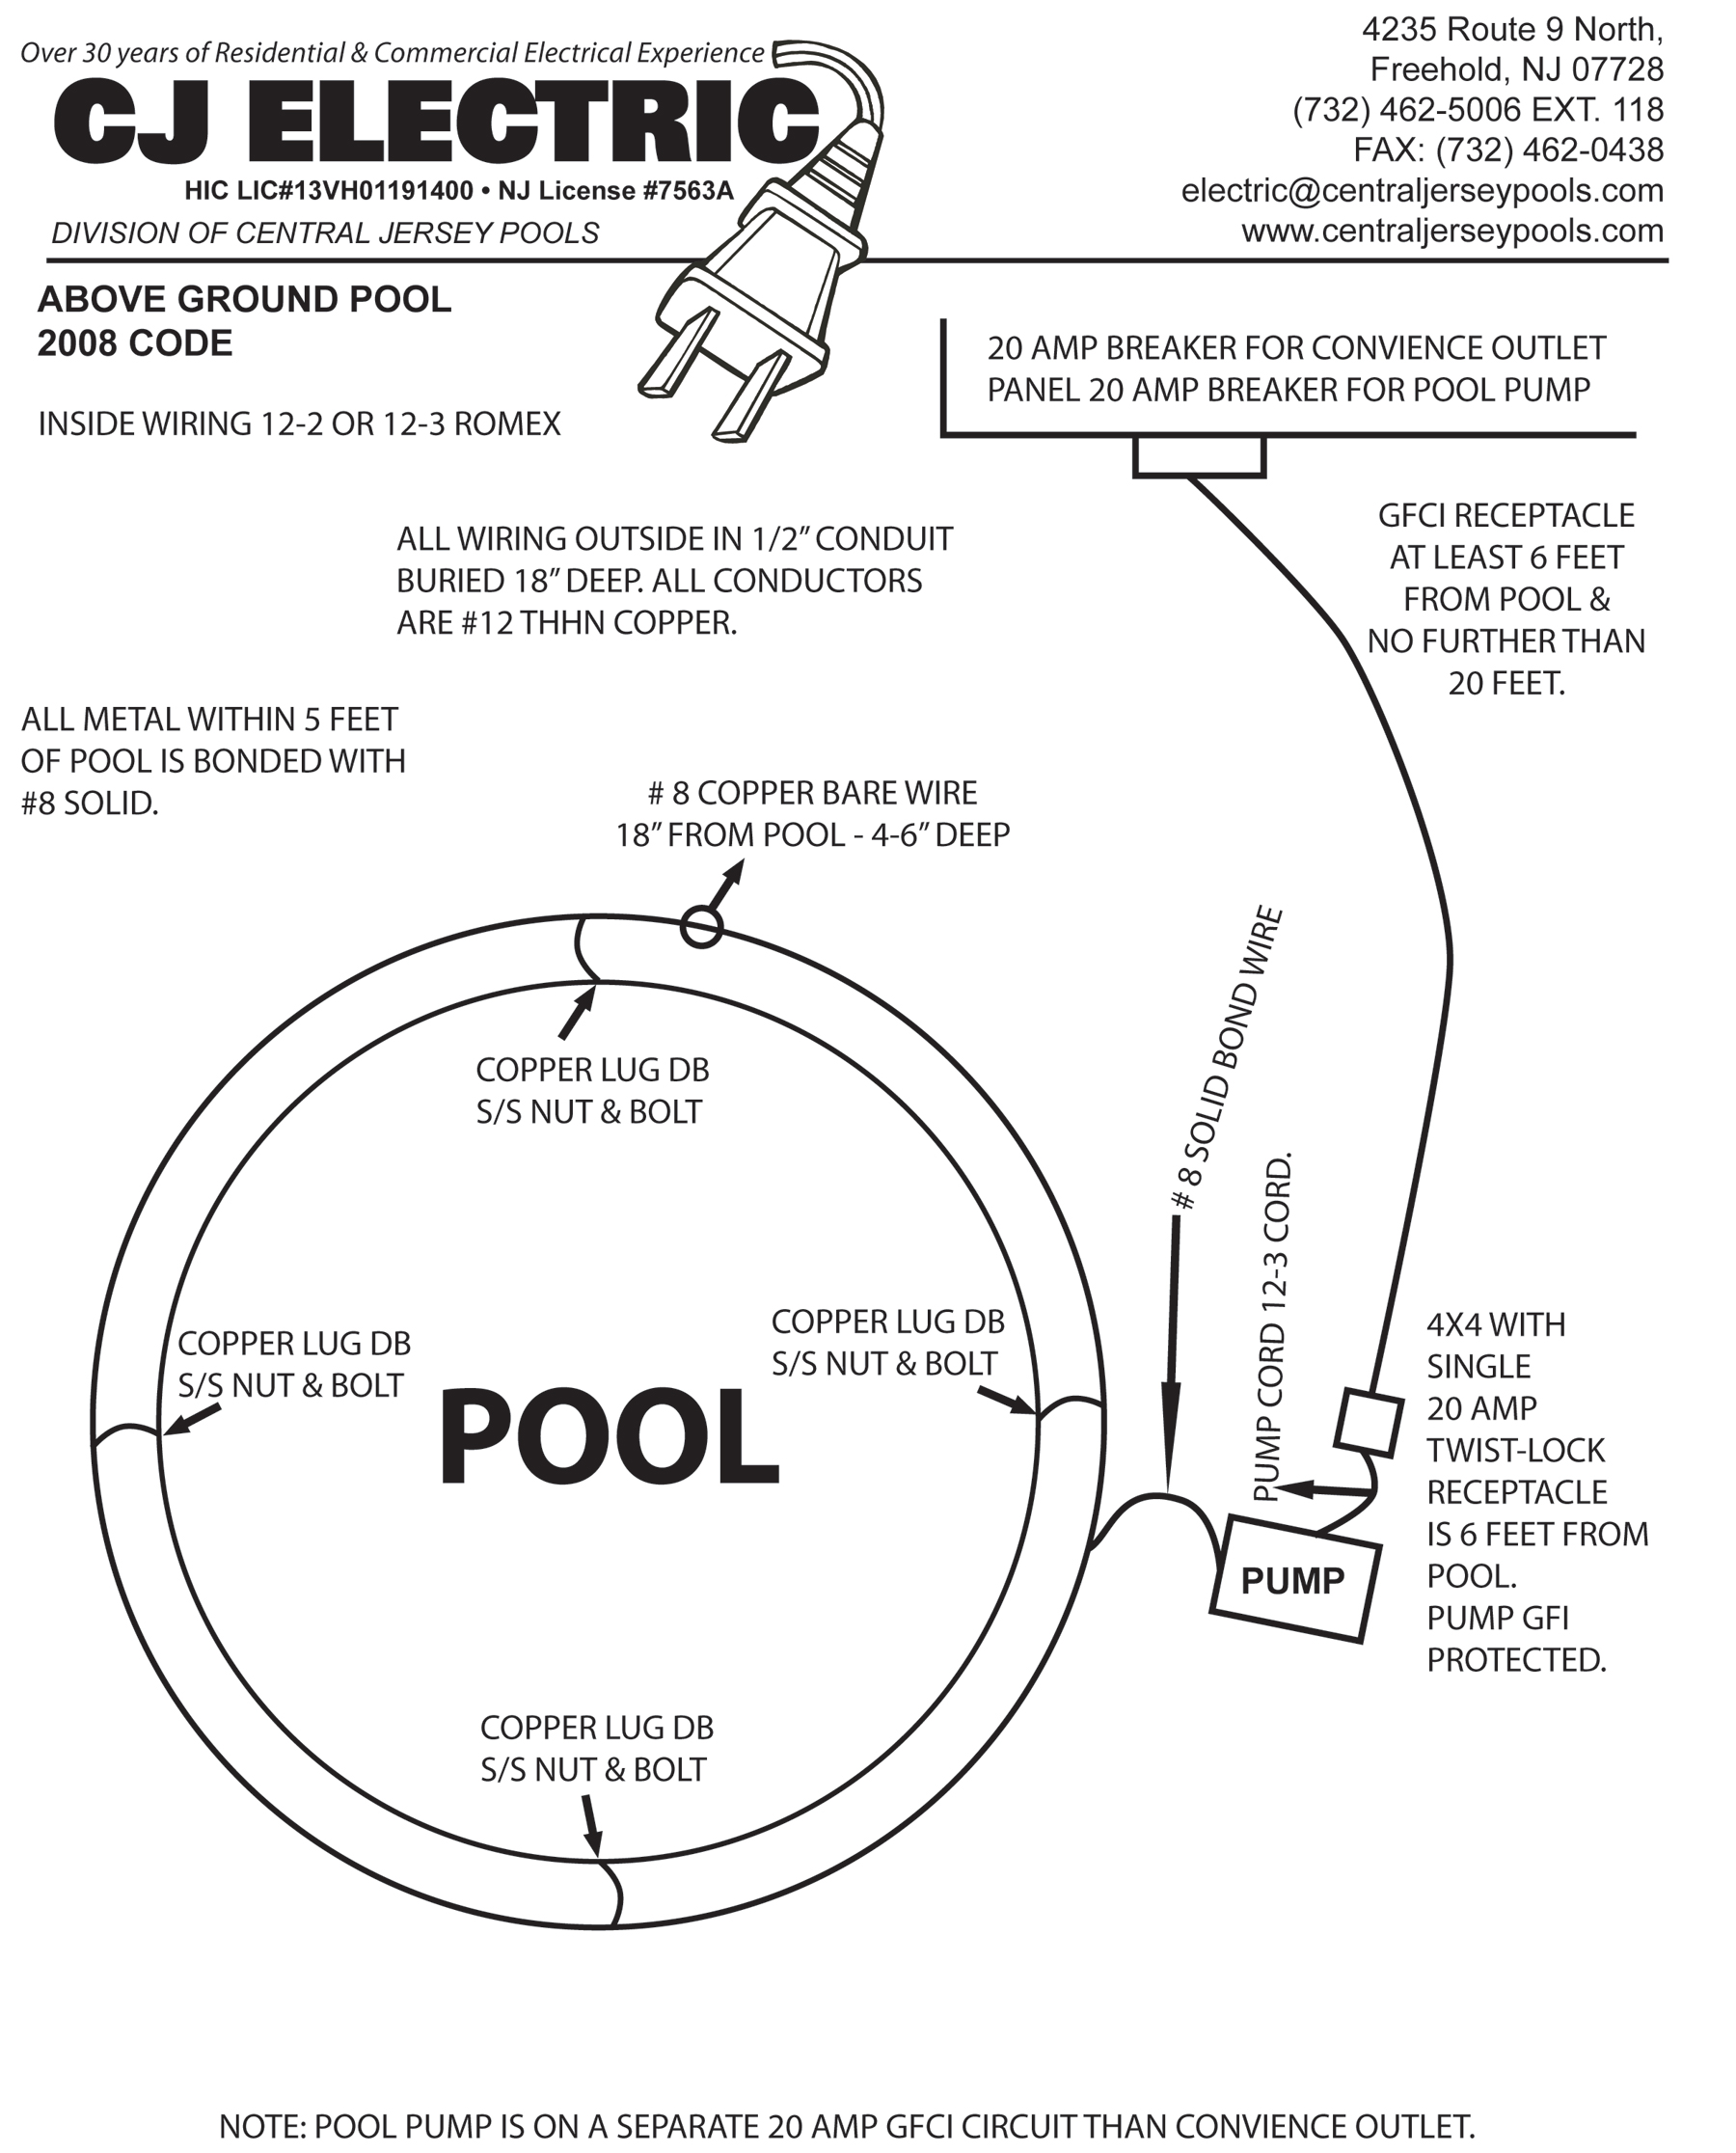 medium resolution of pool wiring code diagrams wiring diagrams pool pump wiring diagram pool wiring code diagrams